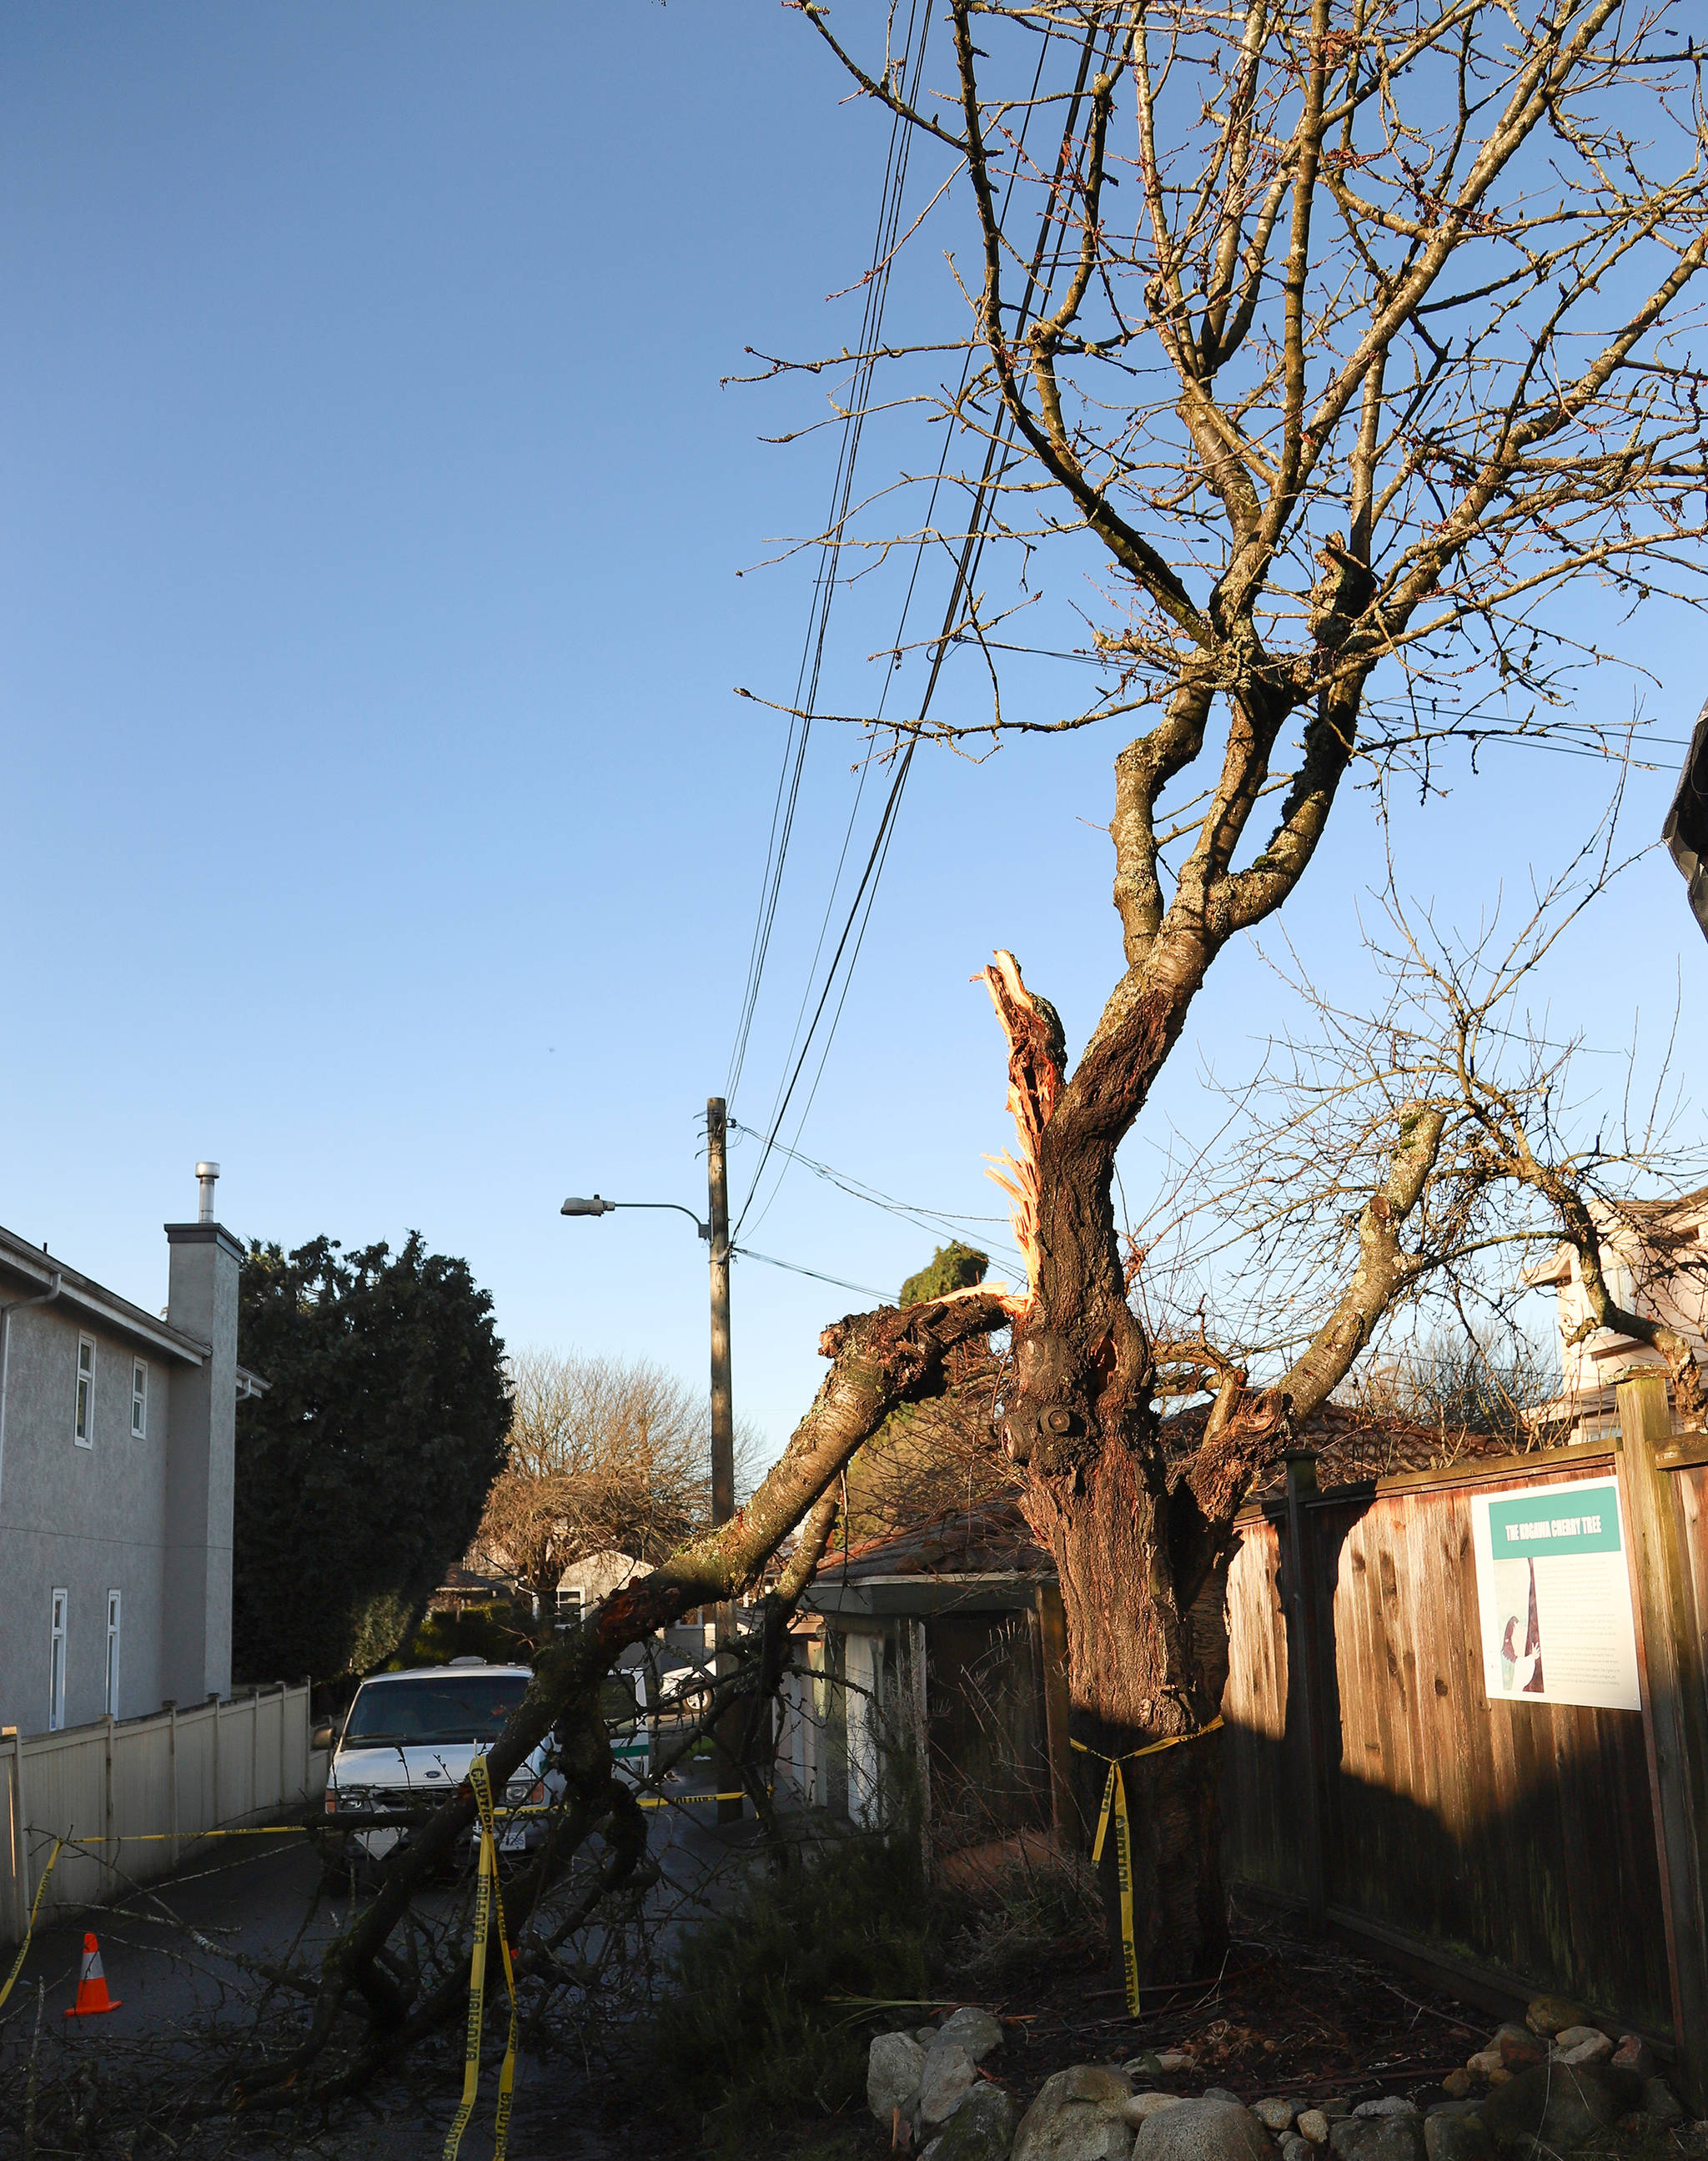 The recent windstorm that toppled trees and downed power lines across much of southern B.C. also damaged a cherry tree in Vancouver, shown in a handout photo, that inspired writer Joy Kogawa. THE CANADIAN PRESS/HO-Ksenia Makagonova Mandatory Credit